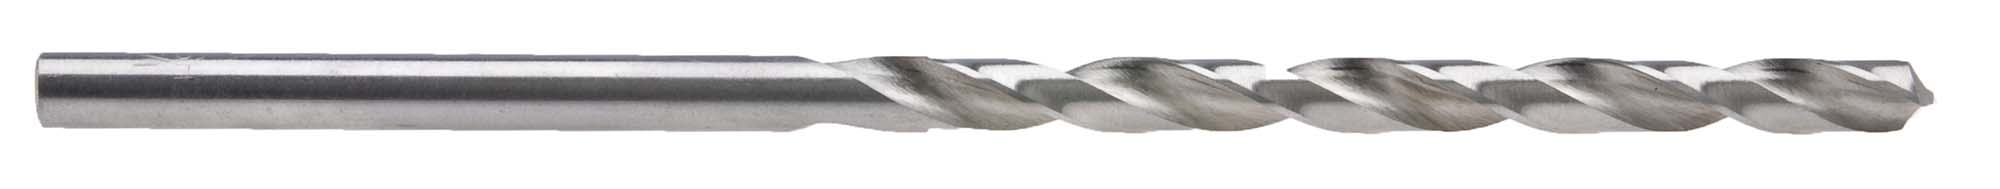 "3/32""  ""Taper Length"" Long Straight Shank Drill Bit, 4 1/4"" Overall Length, High Speed Steel"